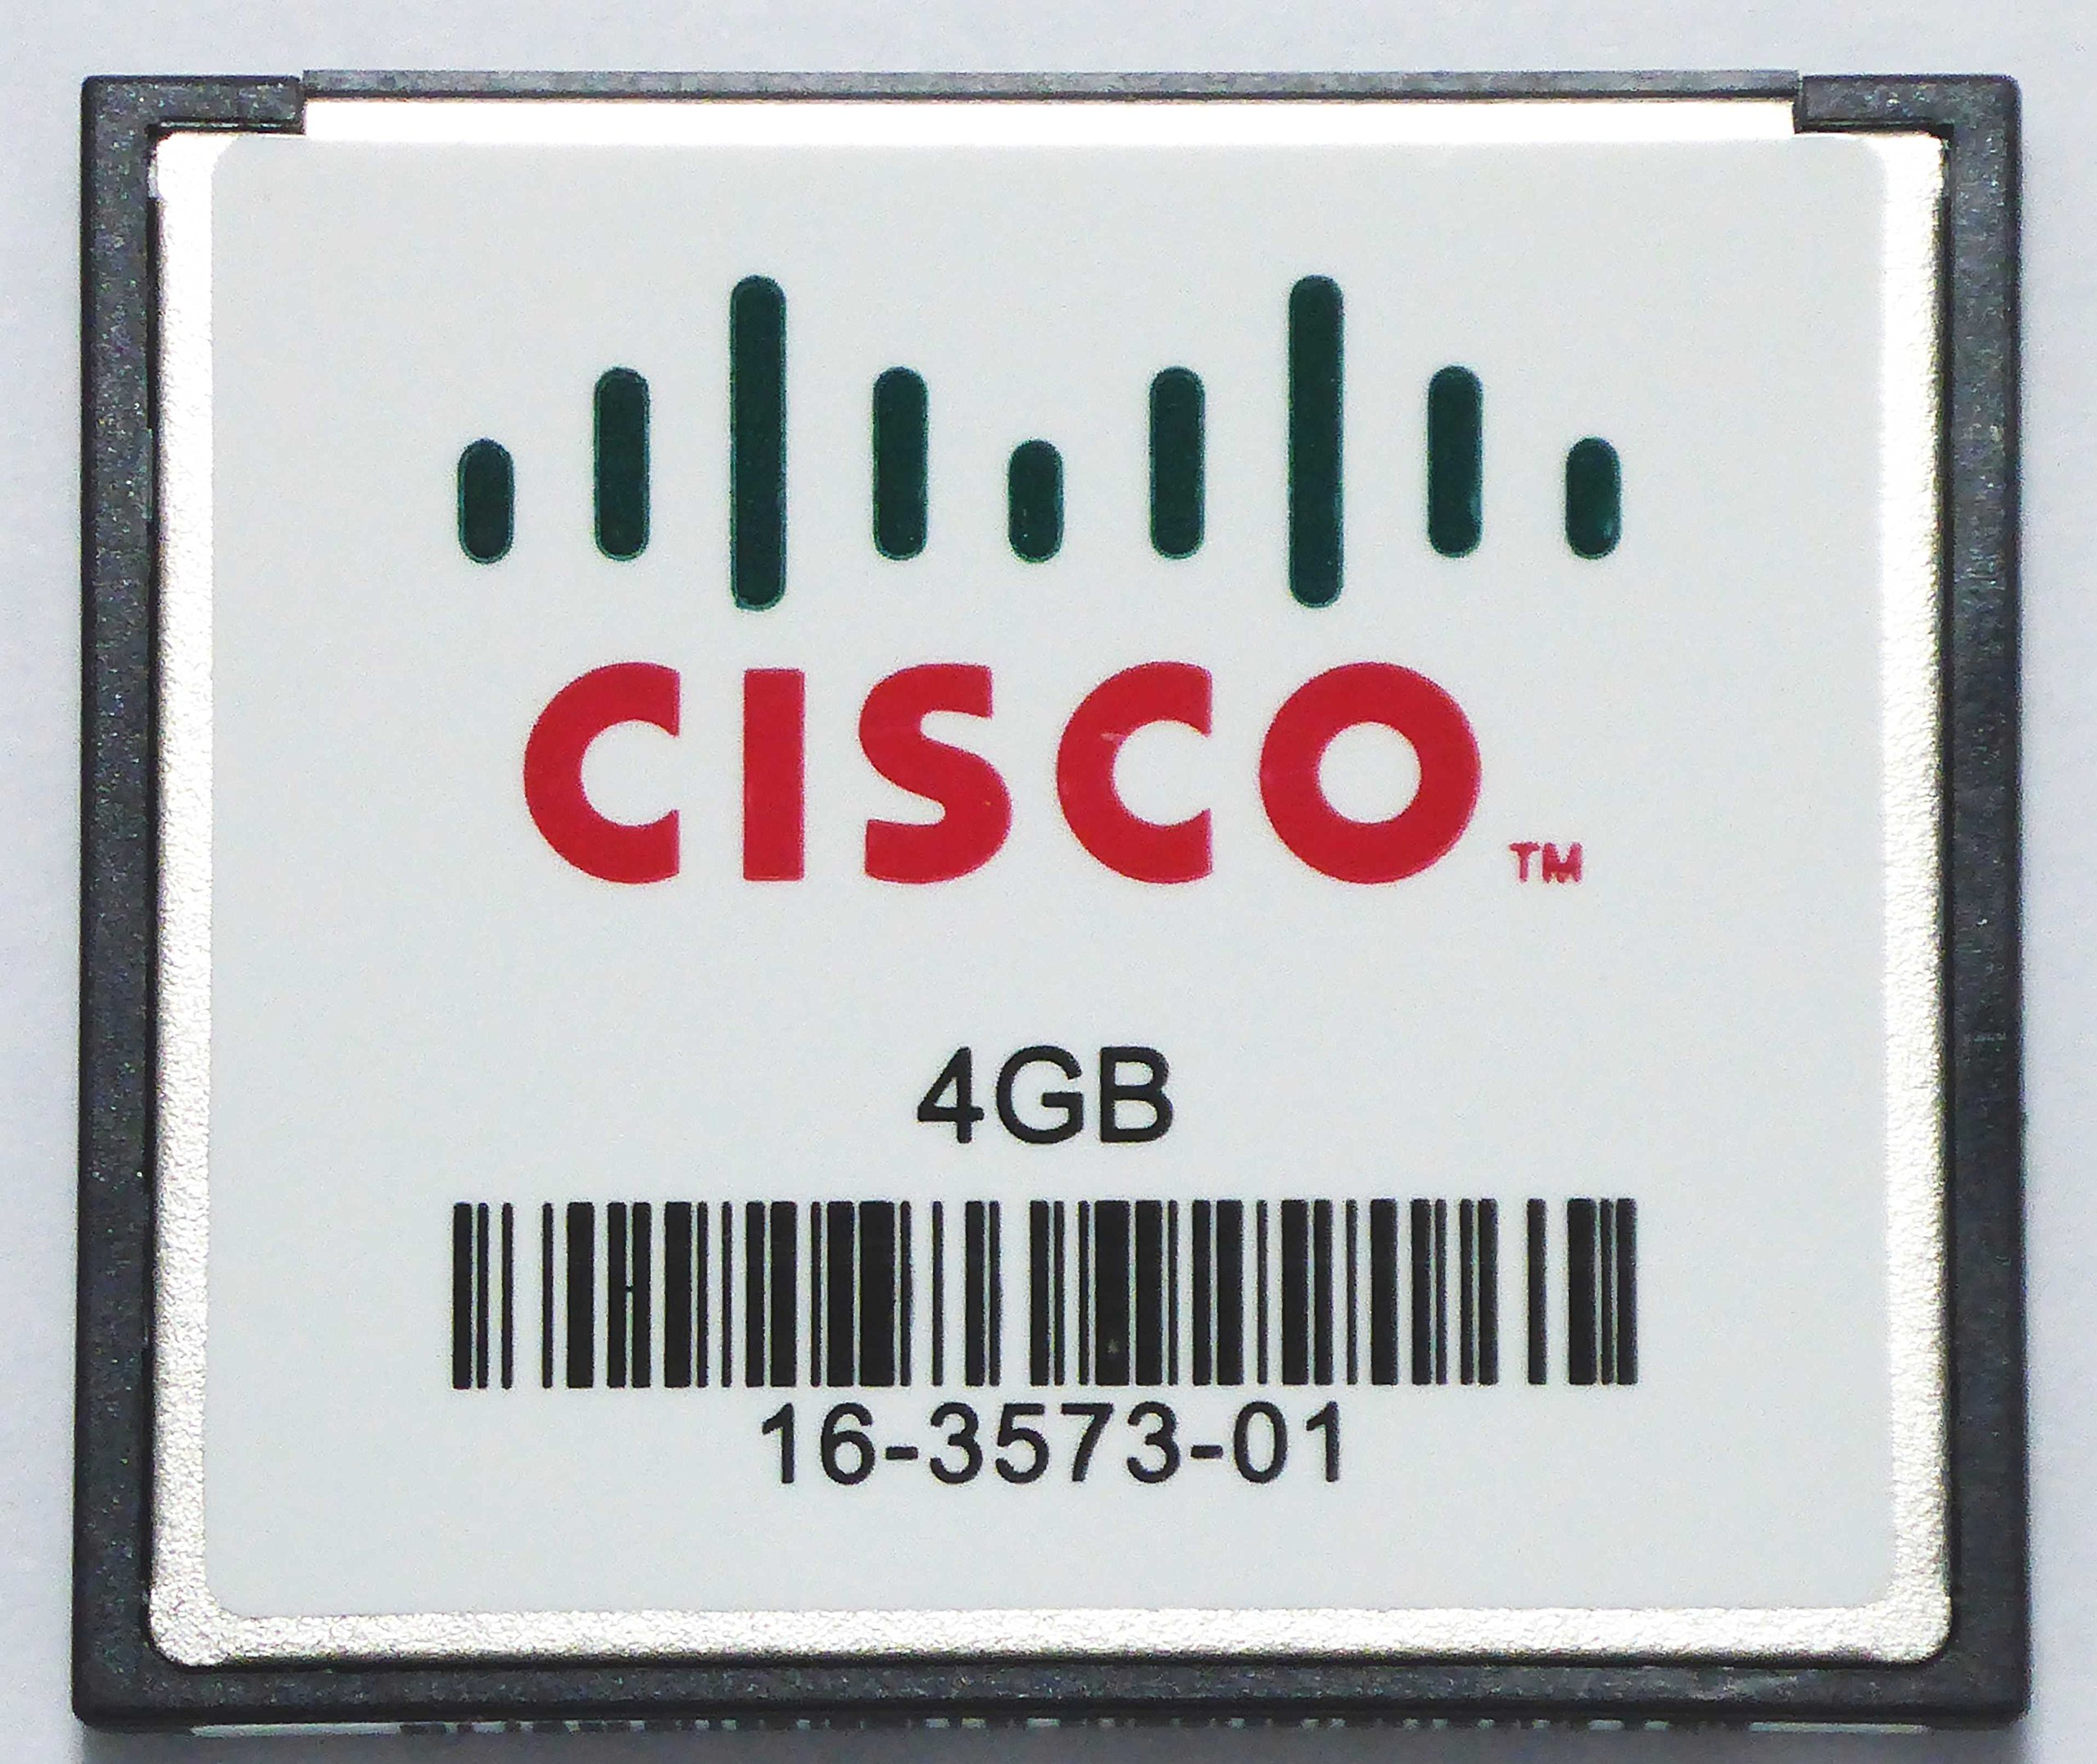 Cisco MEM-CF-4GB= Flash memory card - 4 GB - CompactFlash - for Cisco 1921 4-pair, 1921 ADSL2+, 1921 T1, 19XX, 29XX, 3945 ES24, 39XX by Cisco (Image #1)